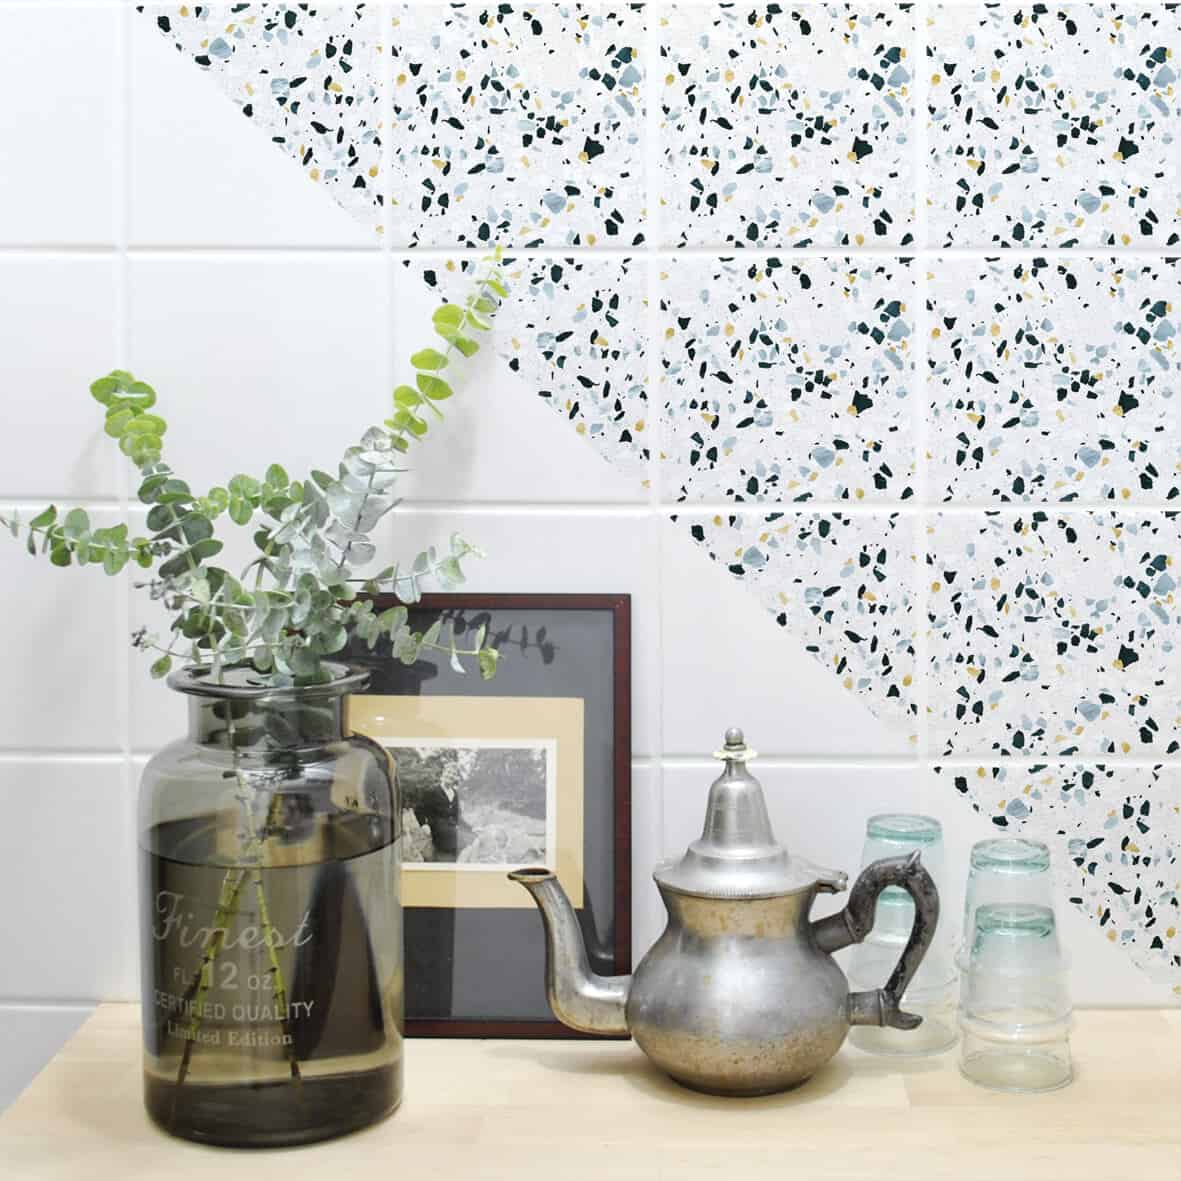 6 Easy Ways to Spruce Up Your Kitchen on a Budget - self-adhesive terrazzo tile stickers from Boubouki